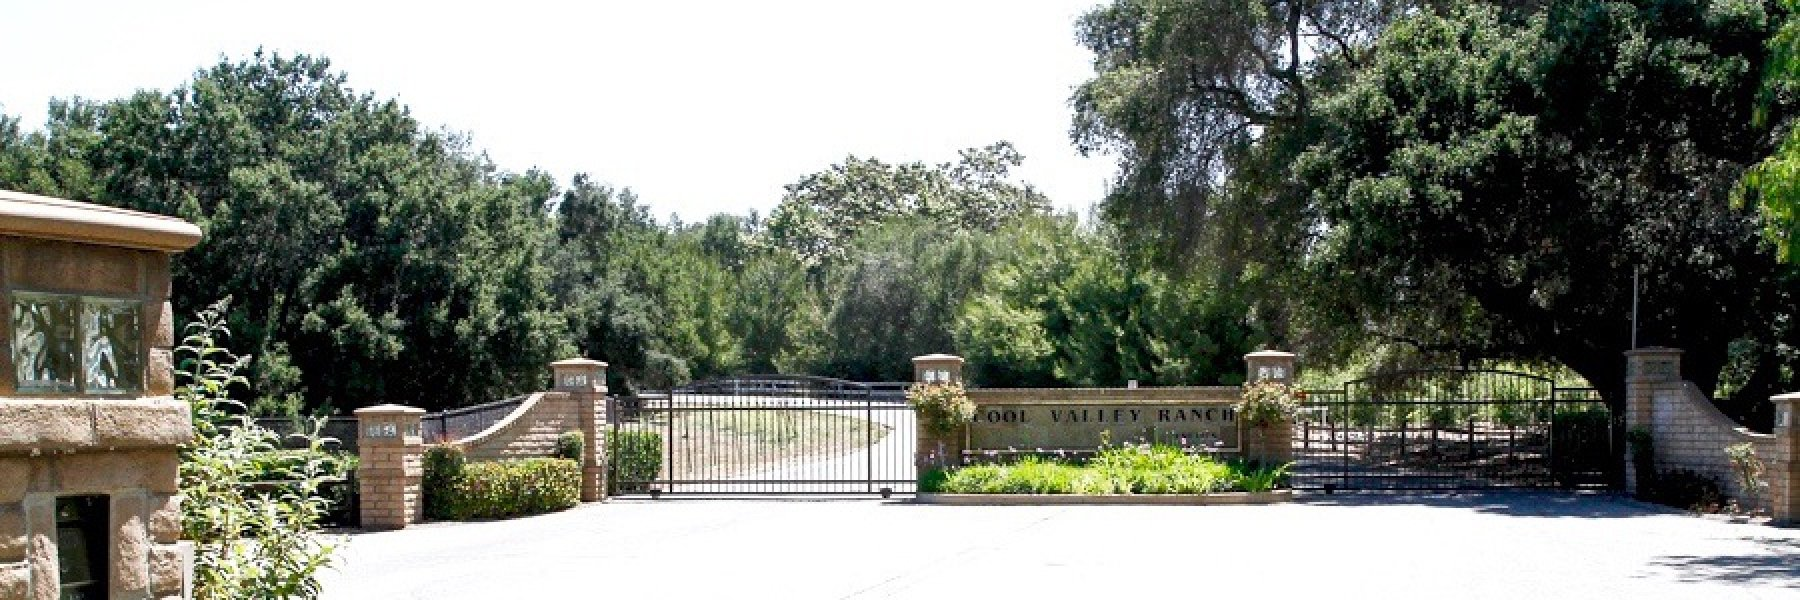 Cool Valley Ranch Estates is a community of homes in Valley Center California